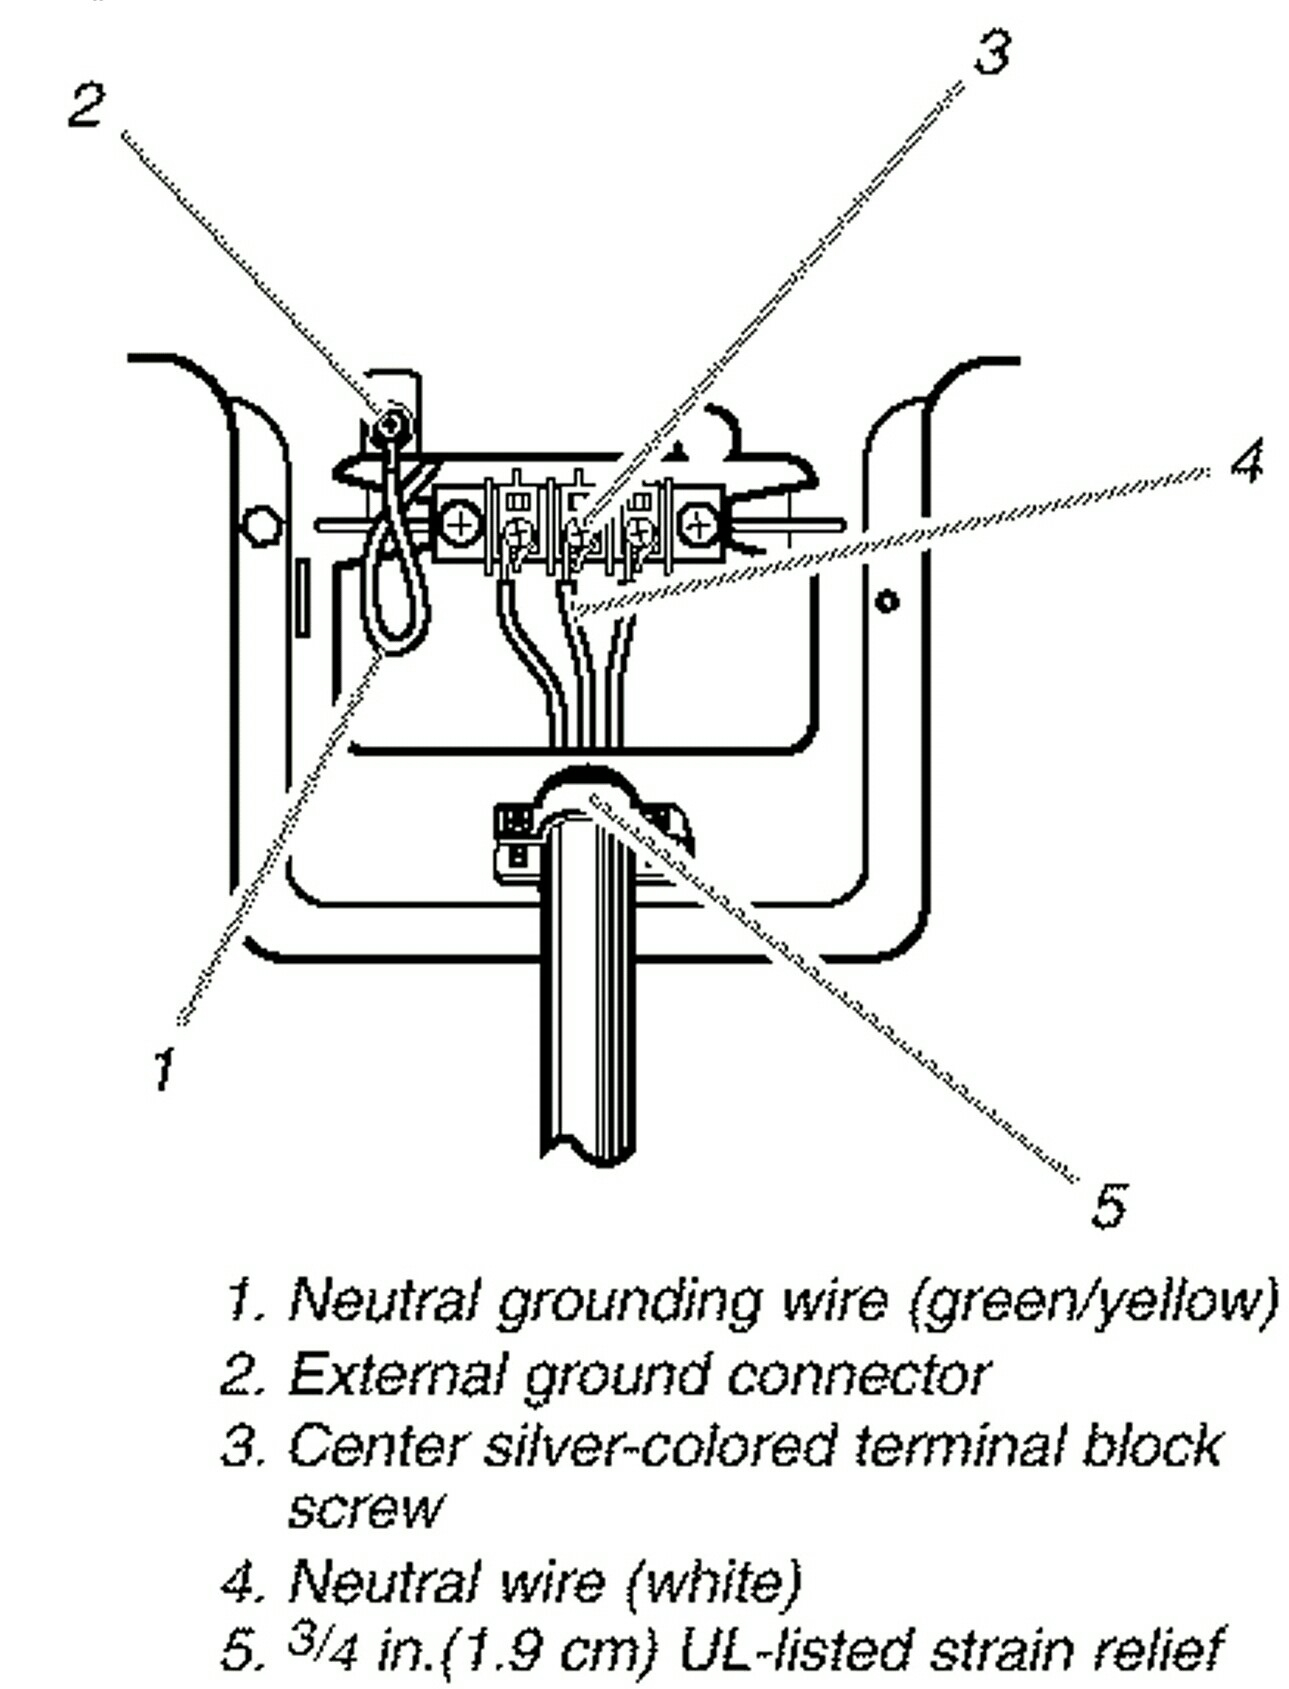 Cord And Plug - White Wire When Changing From 4 Prong To 3 On Dryer - Kenmore Dryer Wiring Diagram